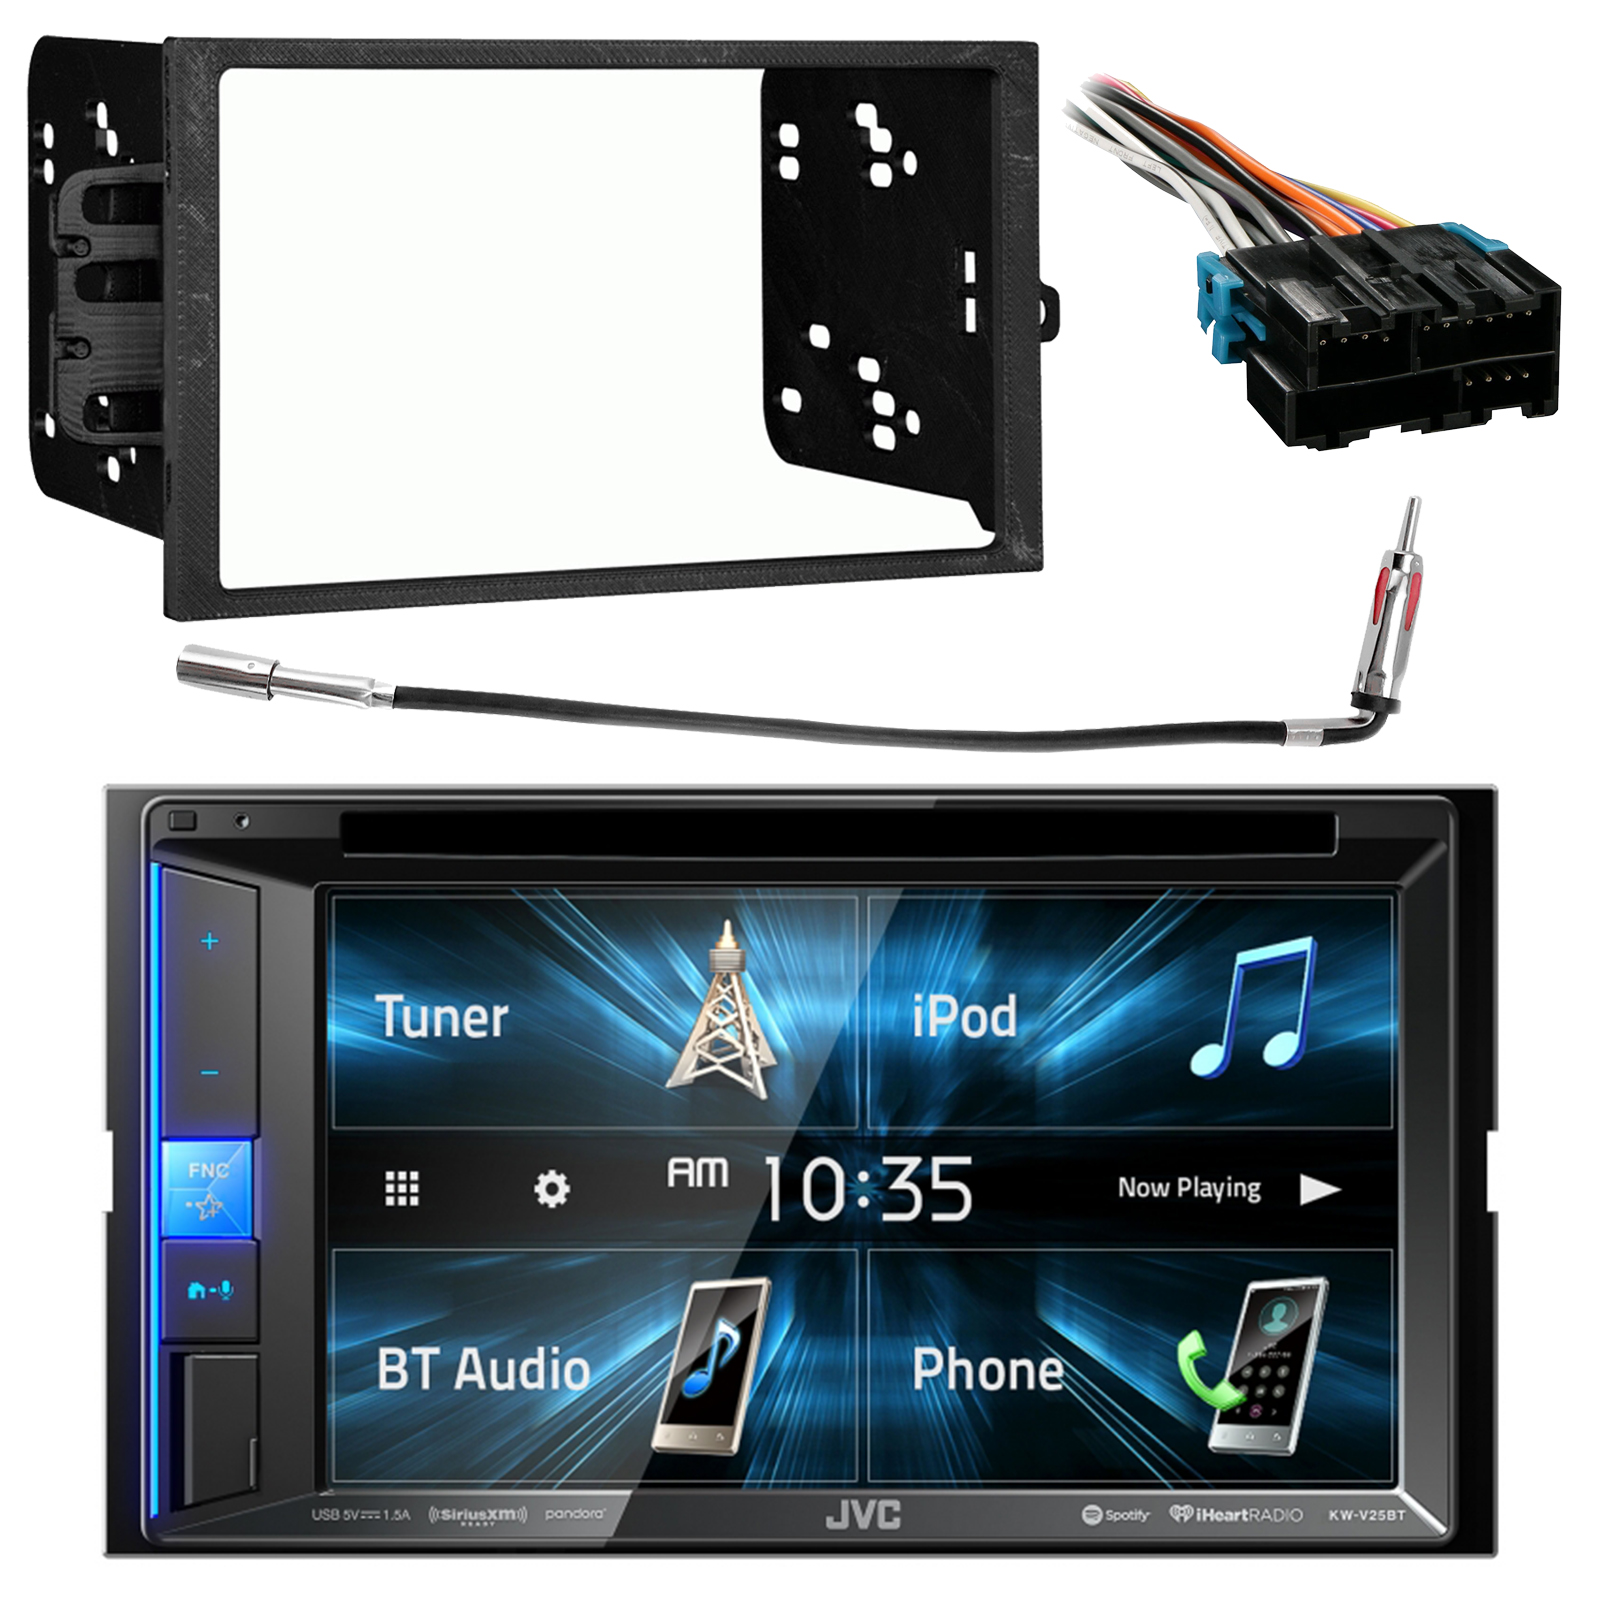 small resolution of gm radio kit6 2 touchscreen double din bluetooth siriusxm car audio stereo receiver double din installation pyle wiring harness